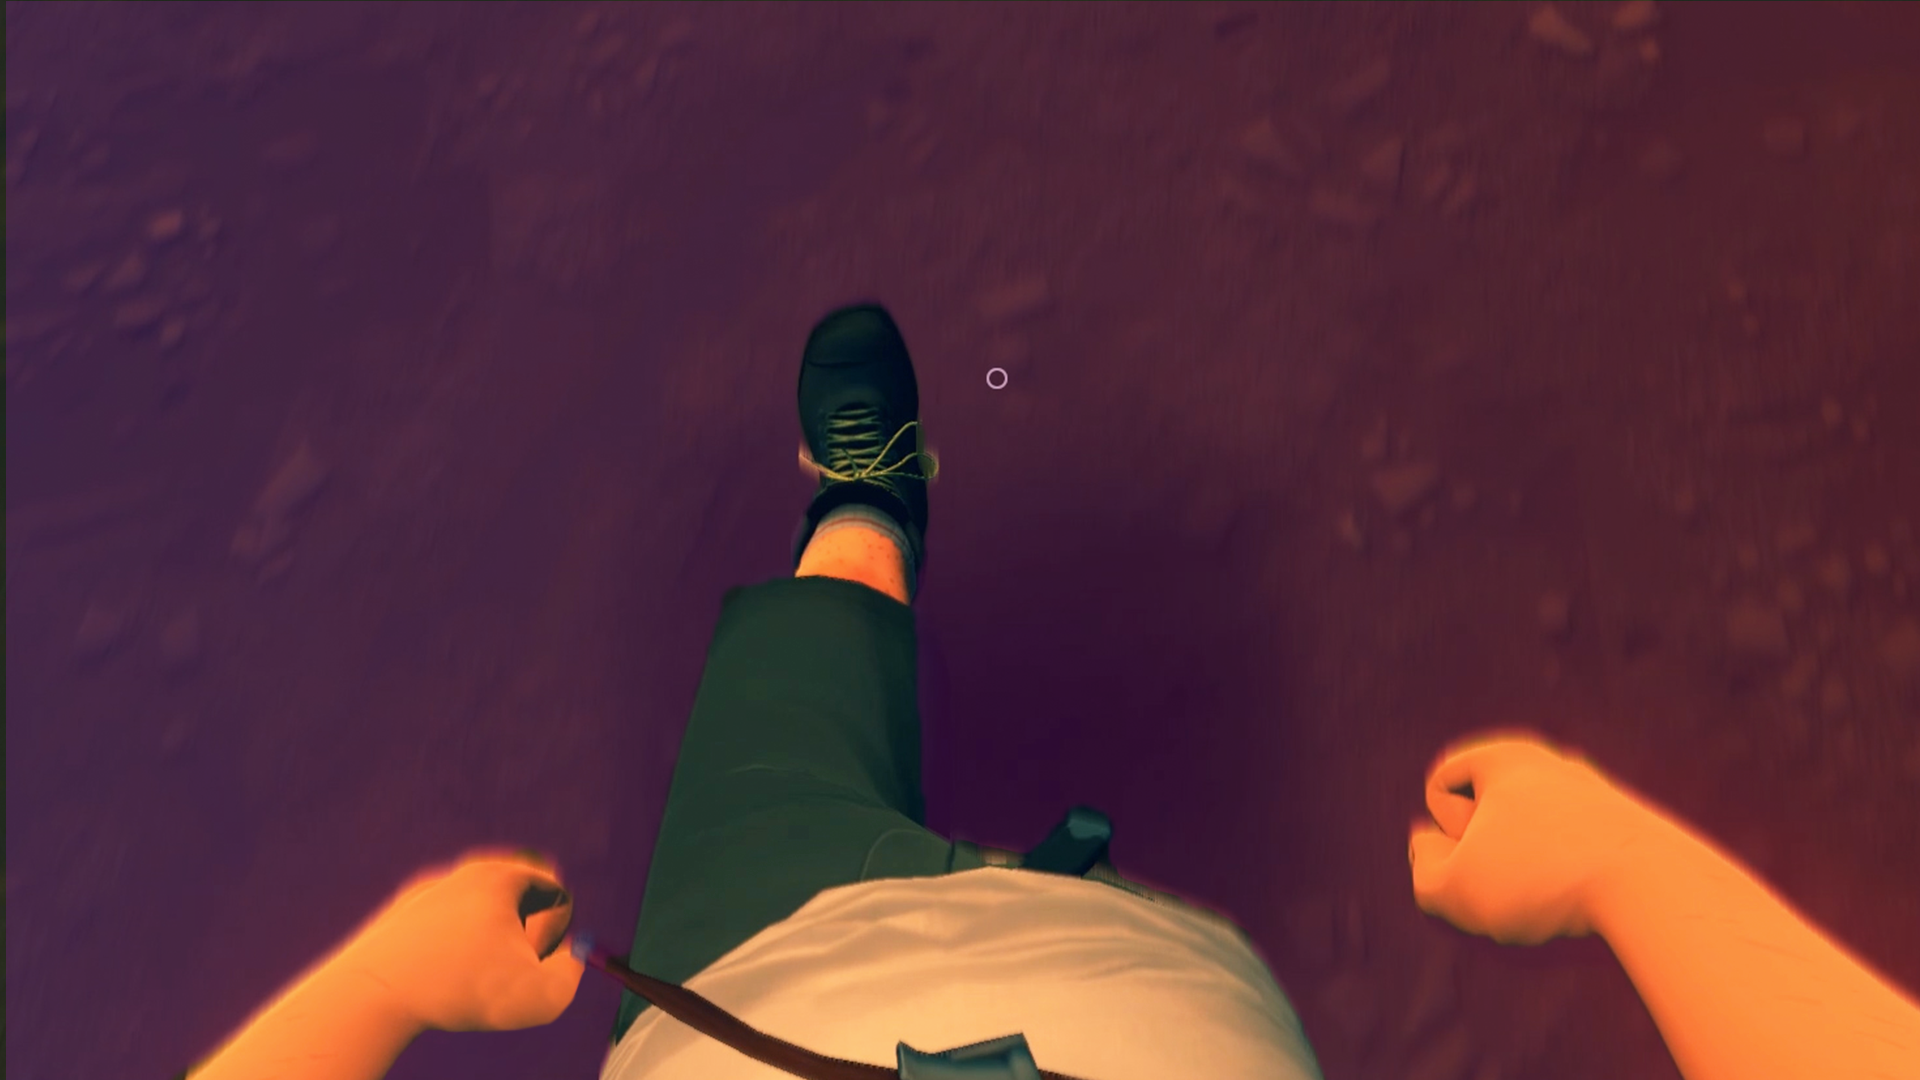 An image from the first person video game Firewatch where the camera is looking down at the character's shoes.